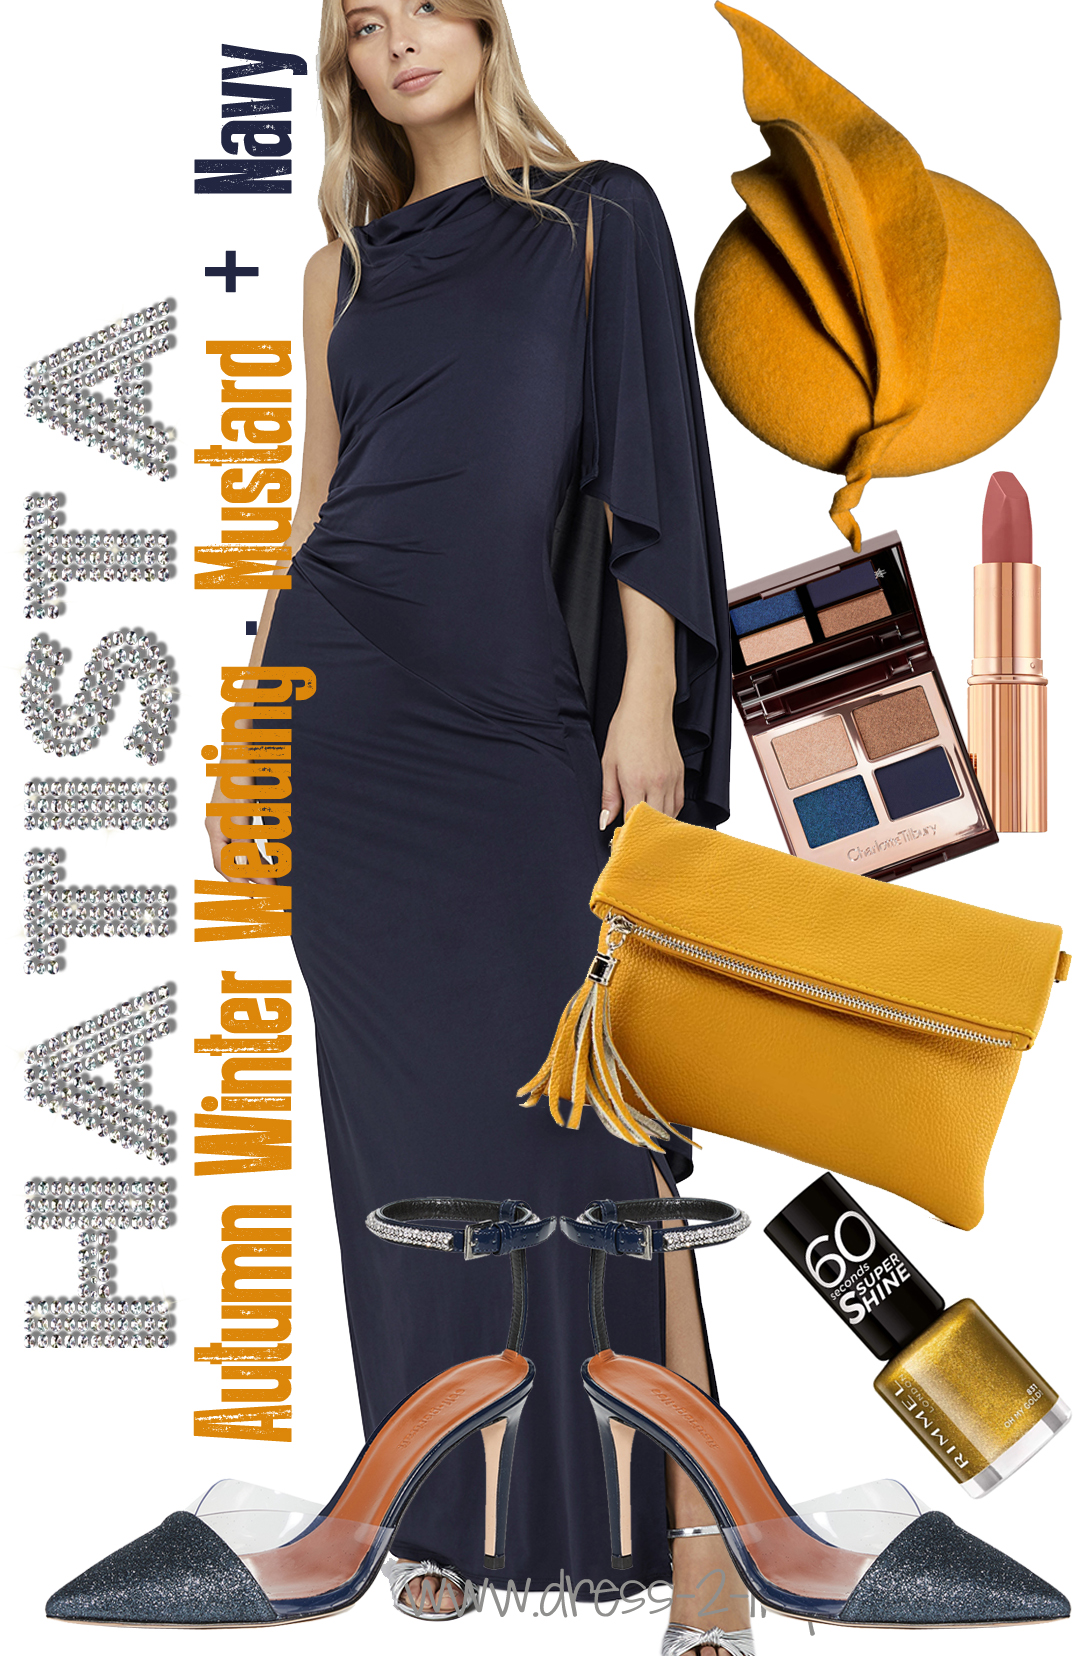 Navy And Mustard Yellow Outfits What To Wear A Winter Wedding